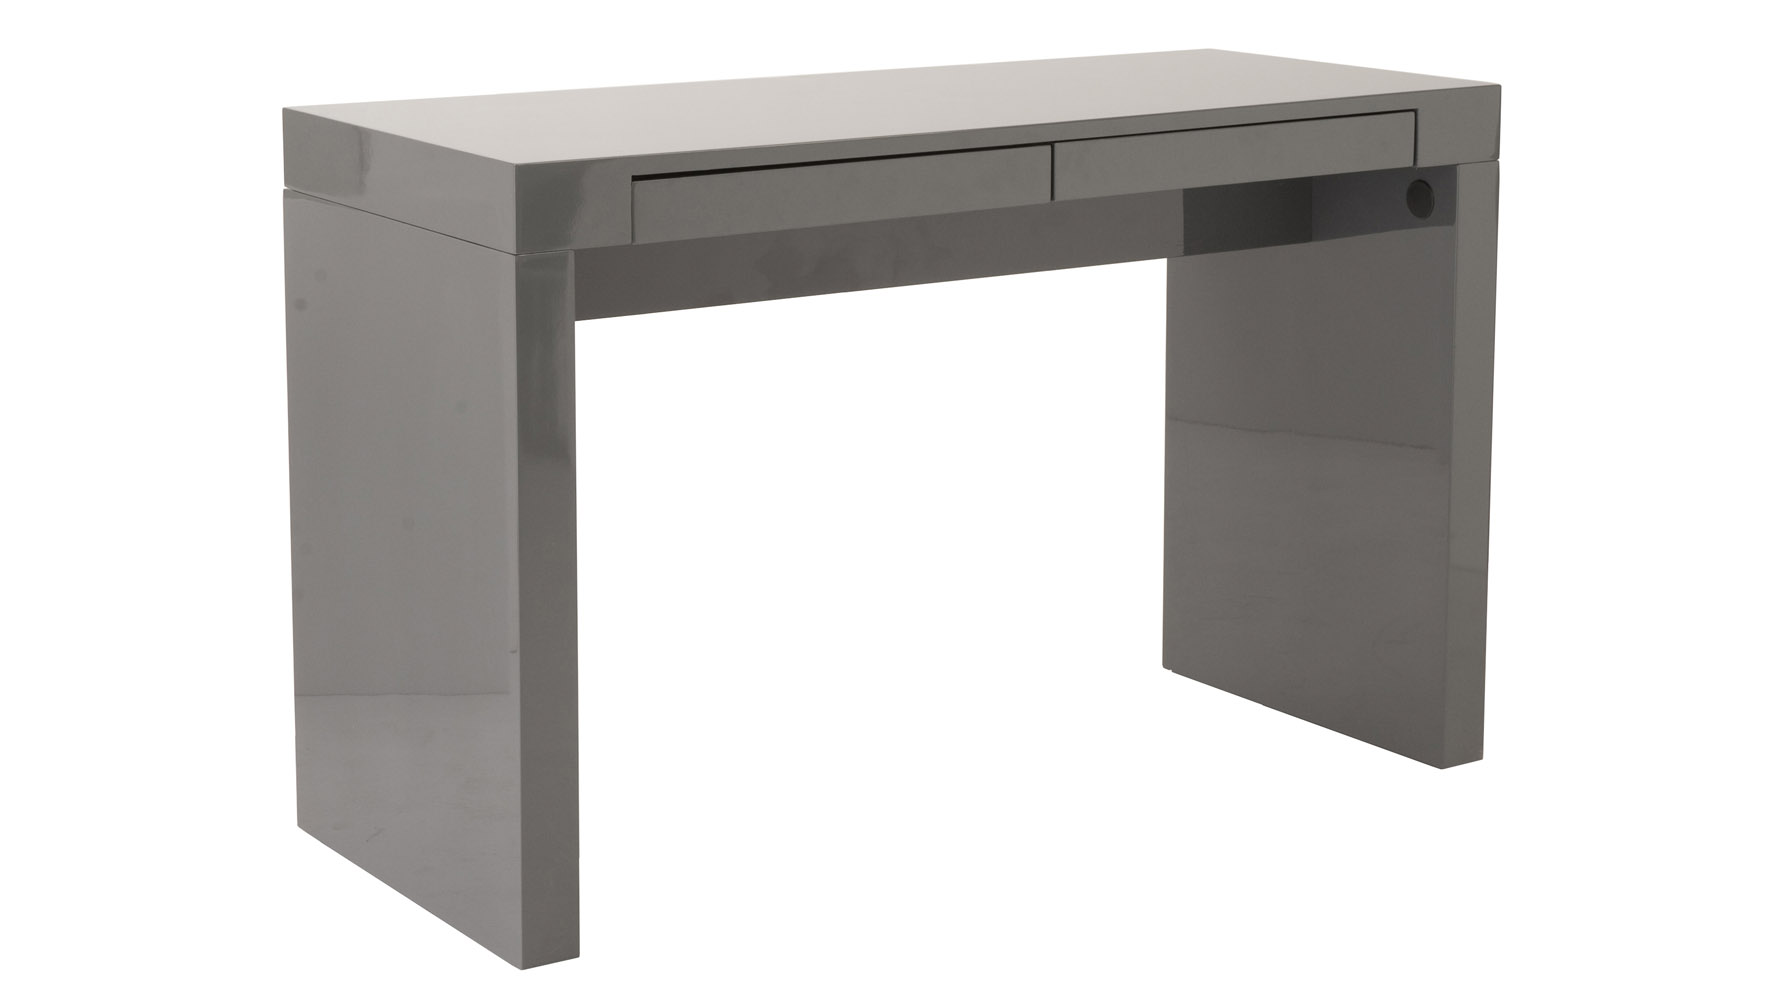 Ansel High Gloss Finish Desk Zuri Furniture